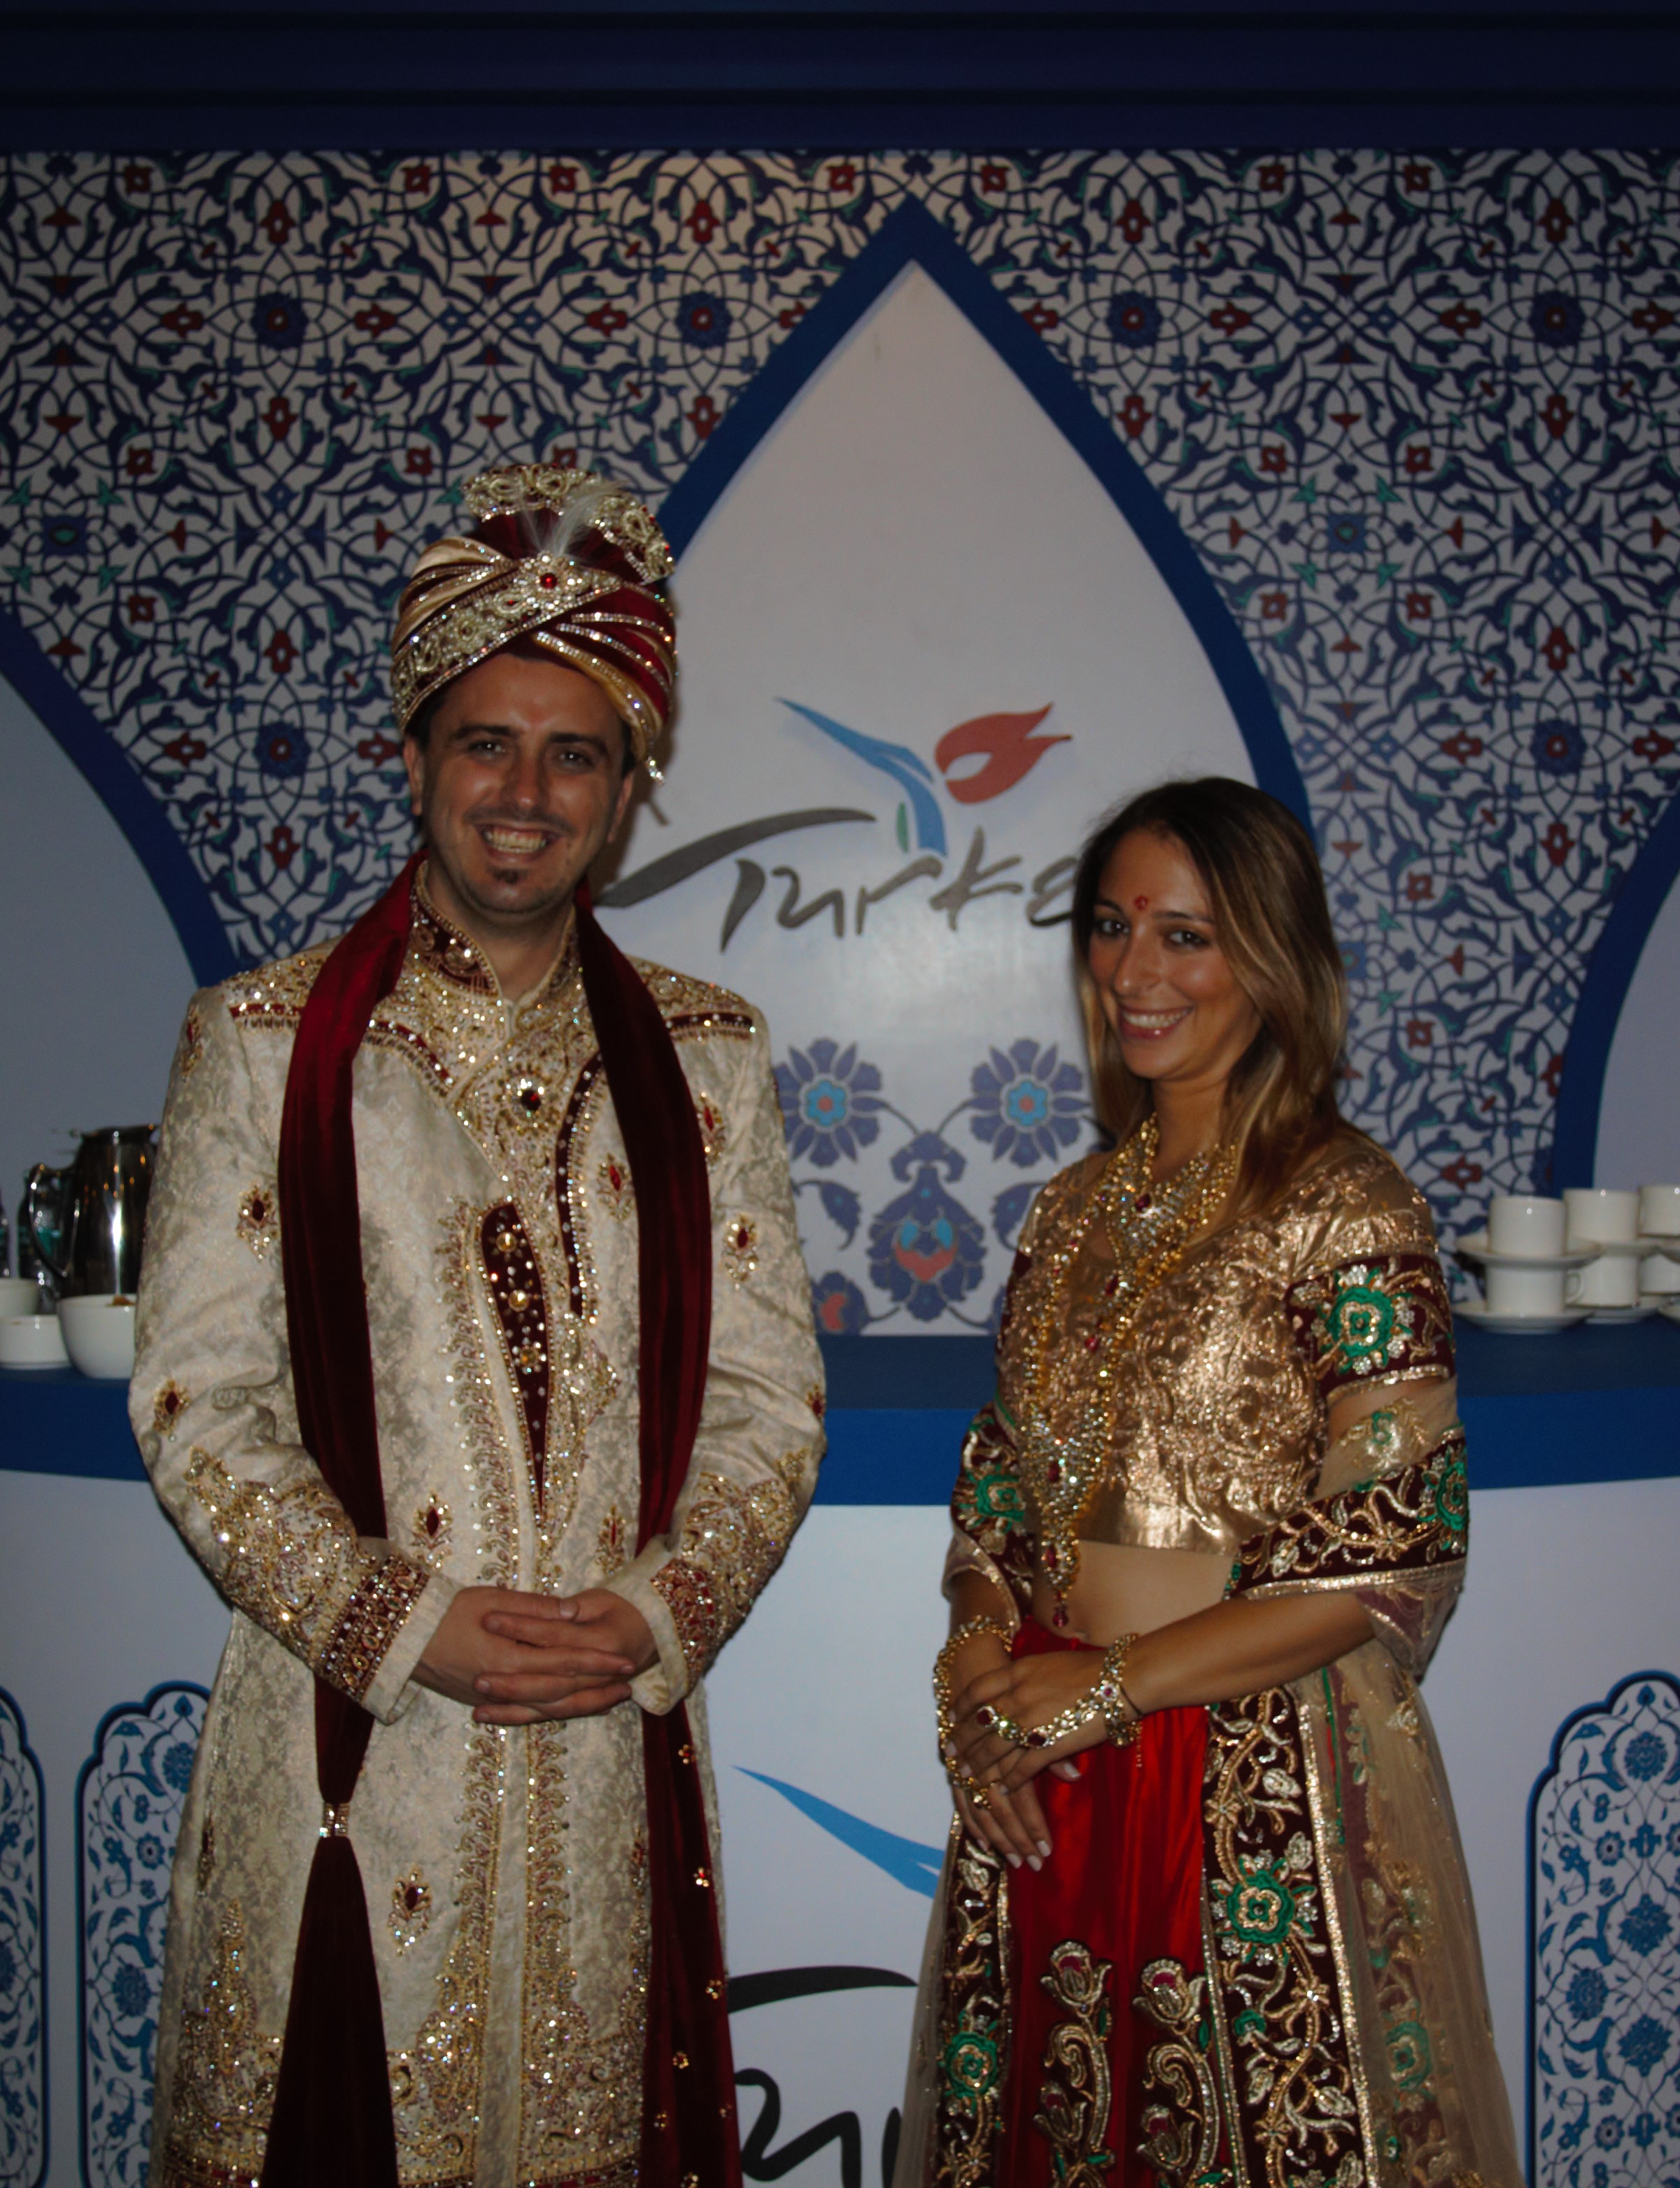 Crystal concepts participated as a presenting sponsor in ICWF – International Conference of Wedding Fraternity in Delhi on July 31st